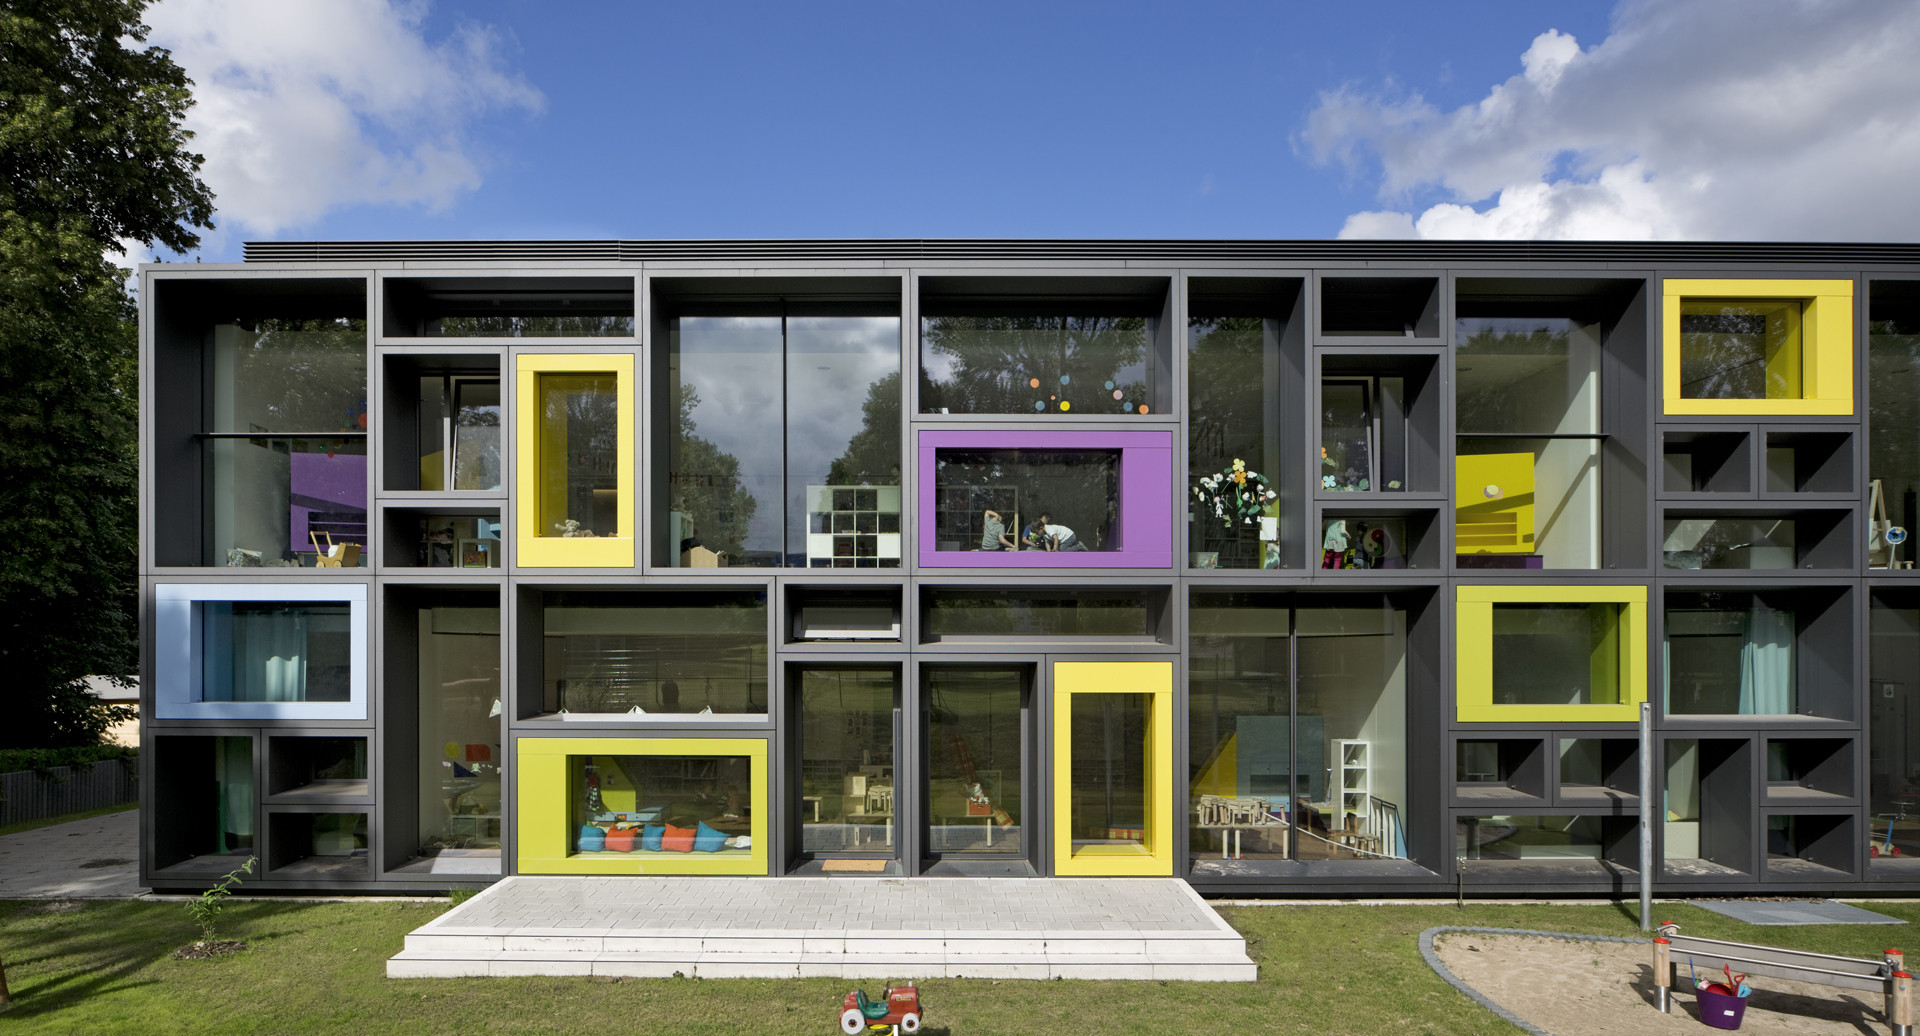 Beiersdorf Children's Day Care Centre / Kadawittfeldarchitektur, © Werner Huthmacher